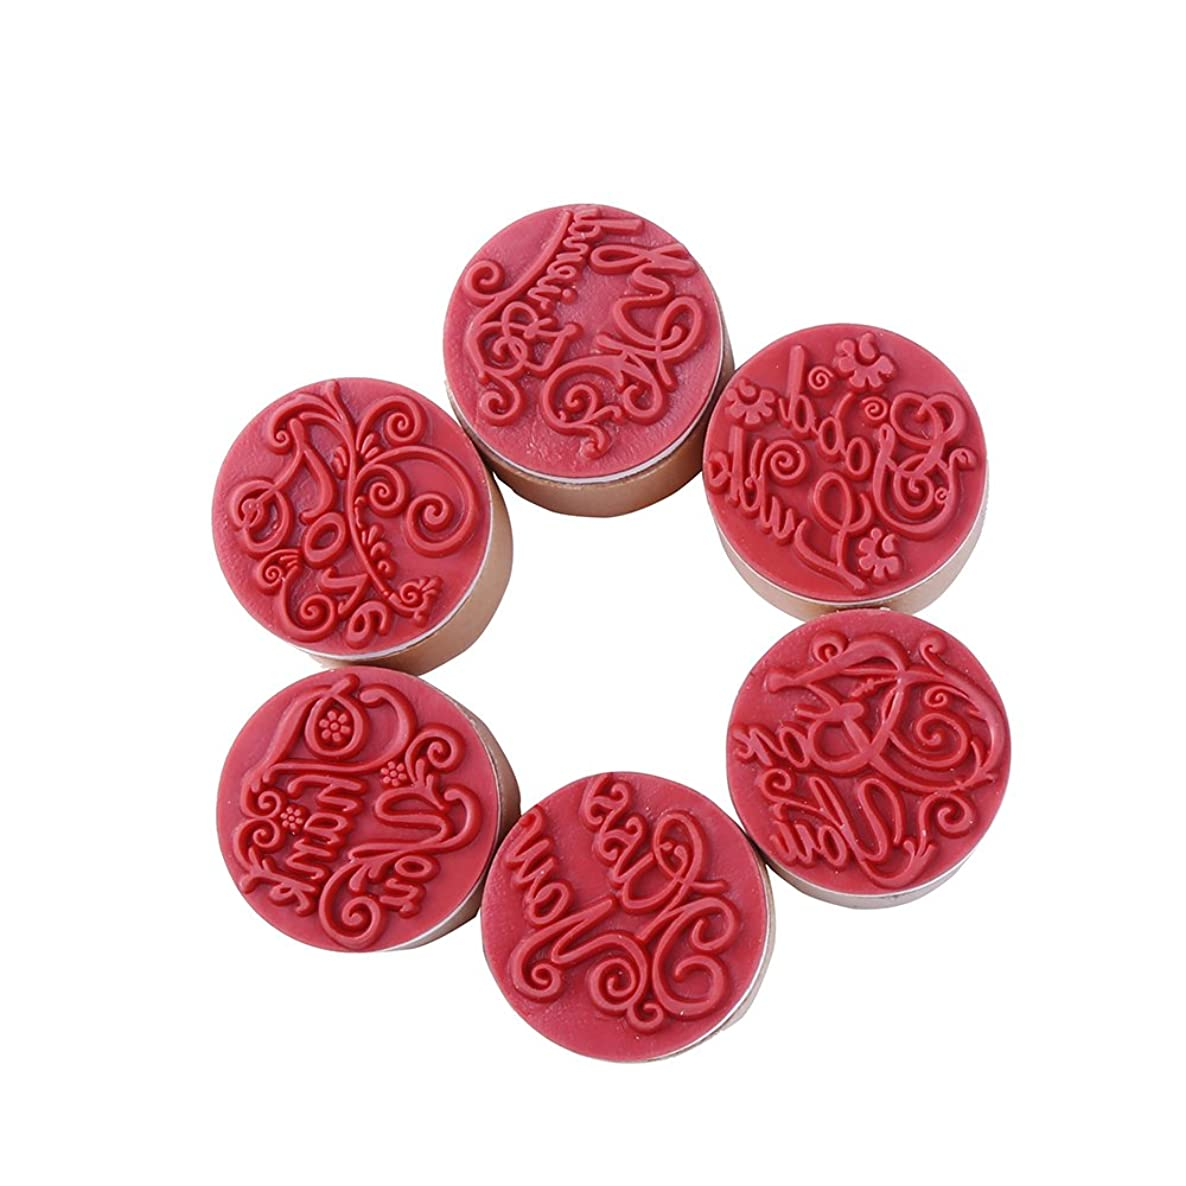 DECORA 6pcs Greeting Round Wooden Rubber Stamp(Miss you/For you/Thank you/Love/My Friend/Good Luck)